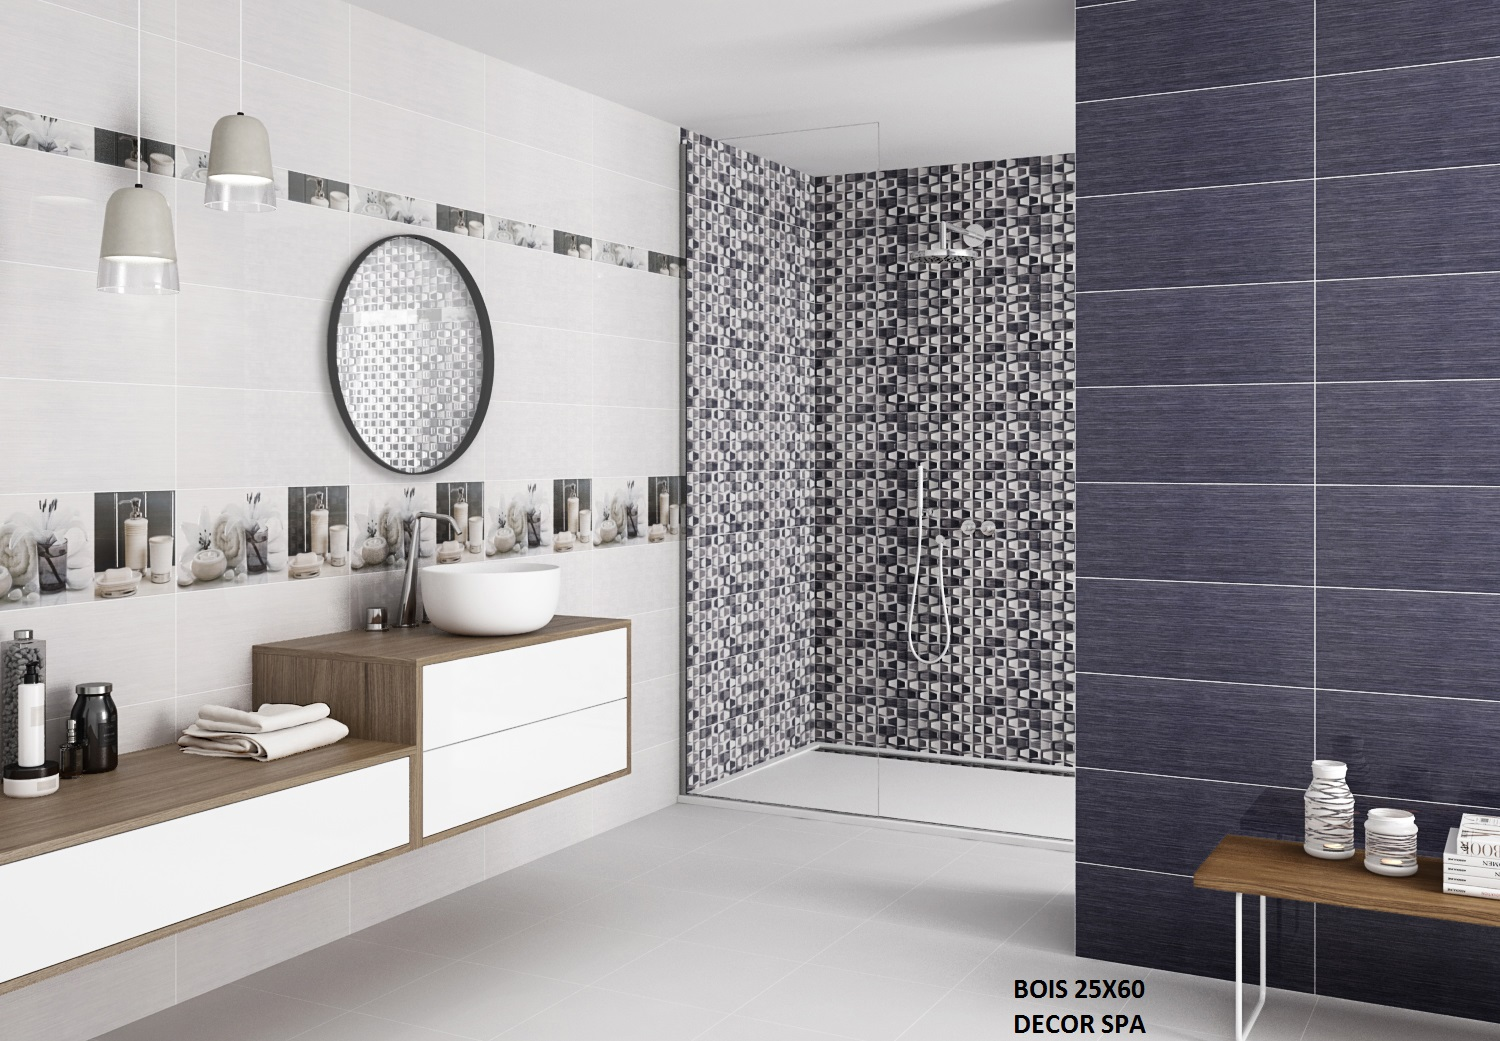 BOIS 25X60 DECOR SPA